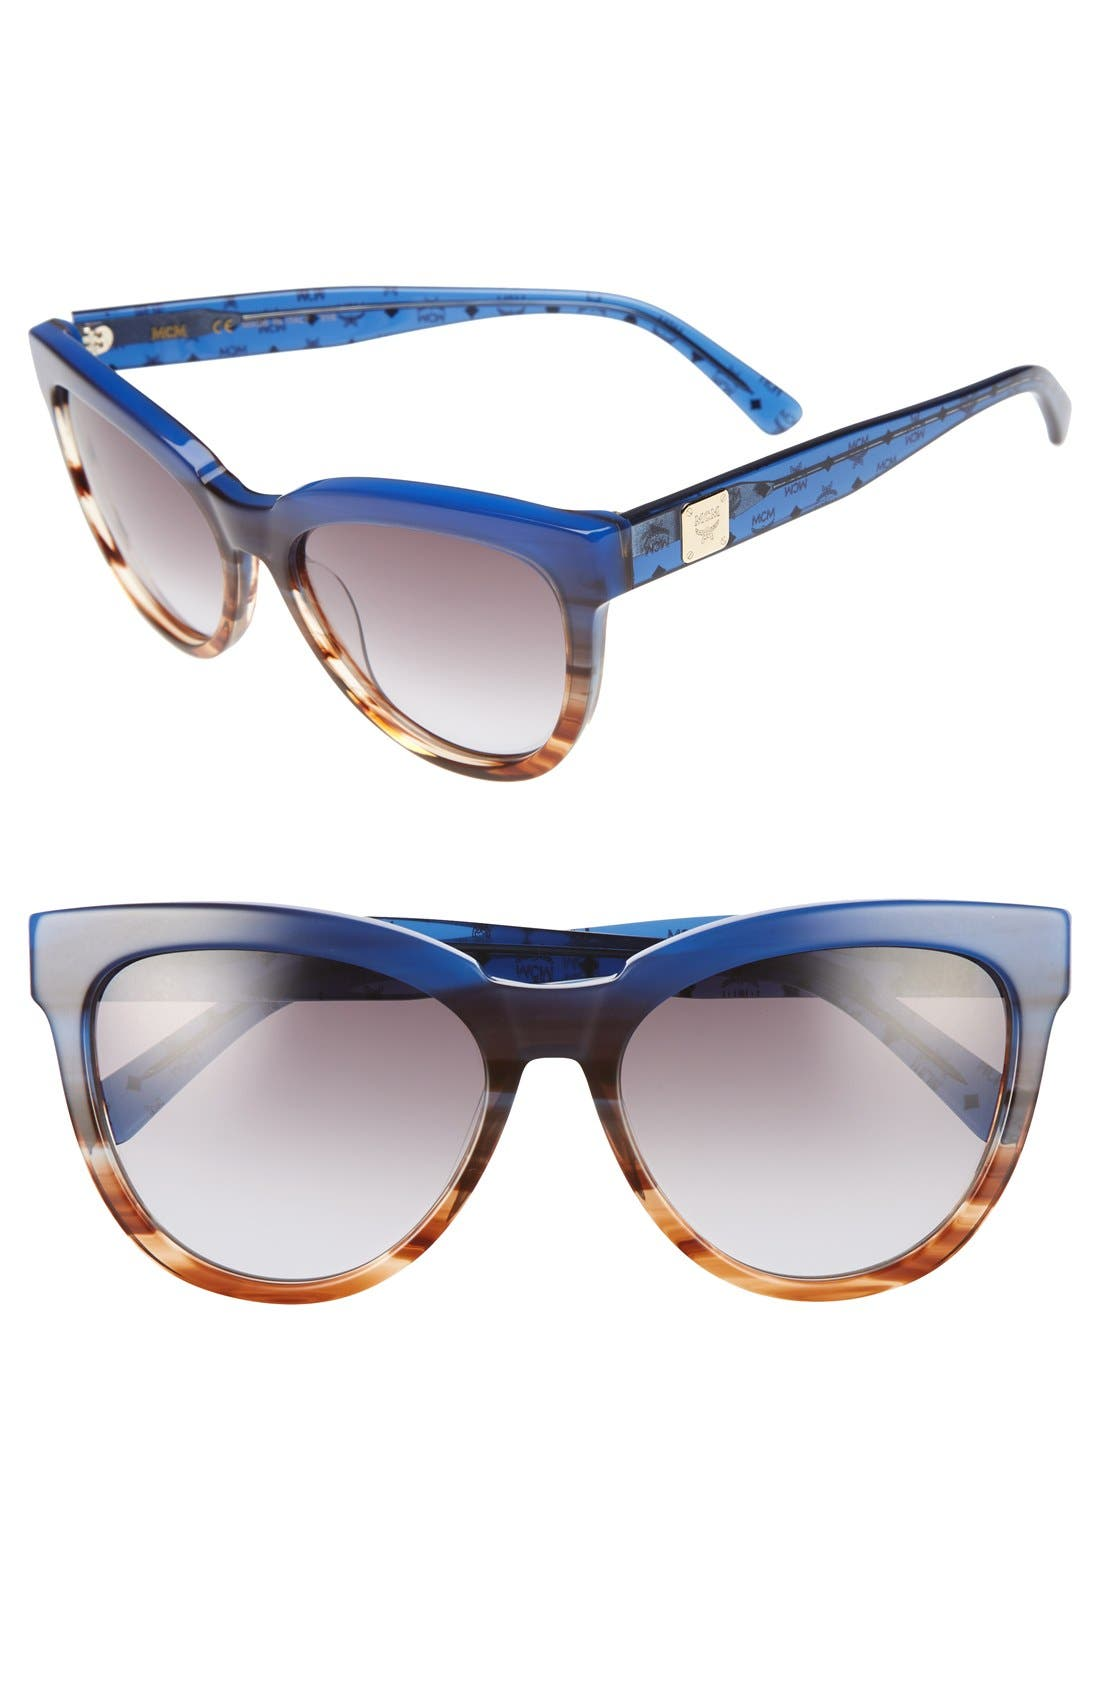 MCM 56mm Retro Sunglasses